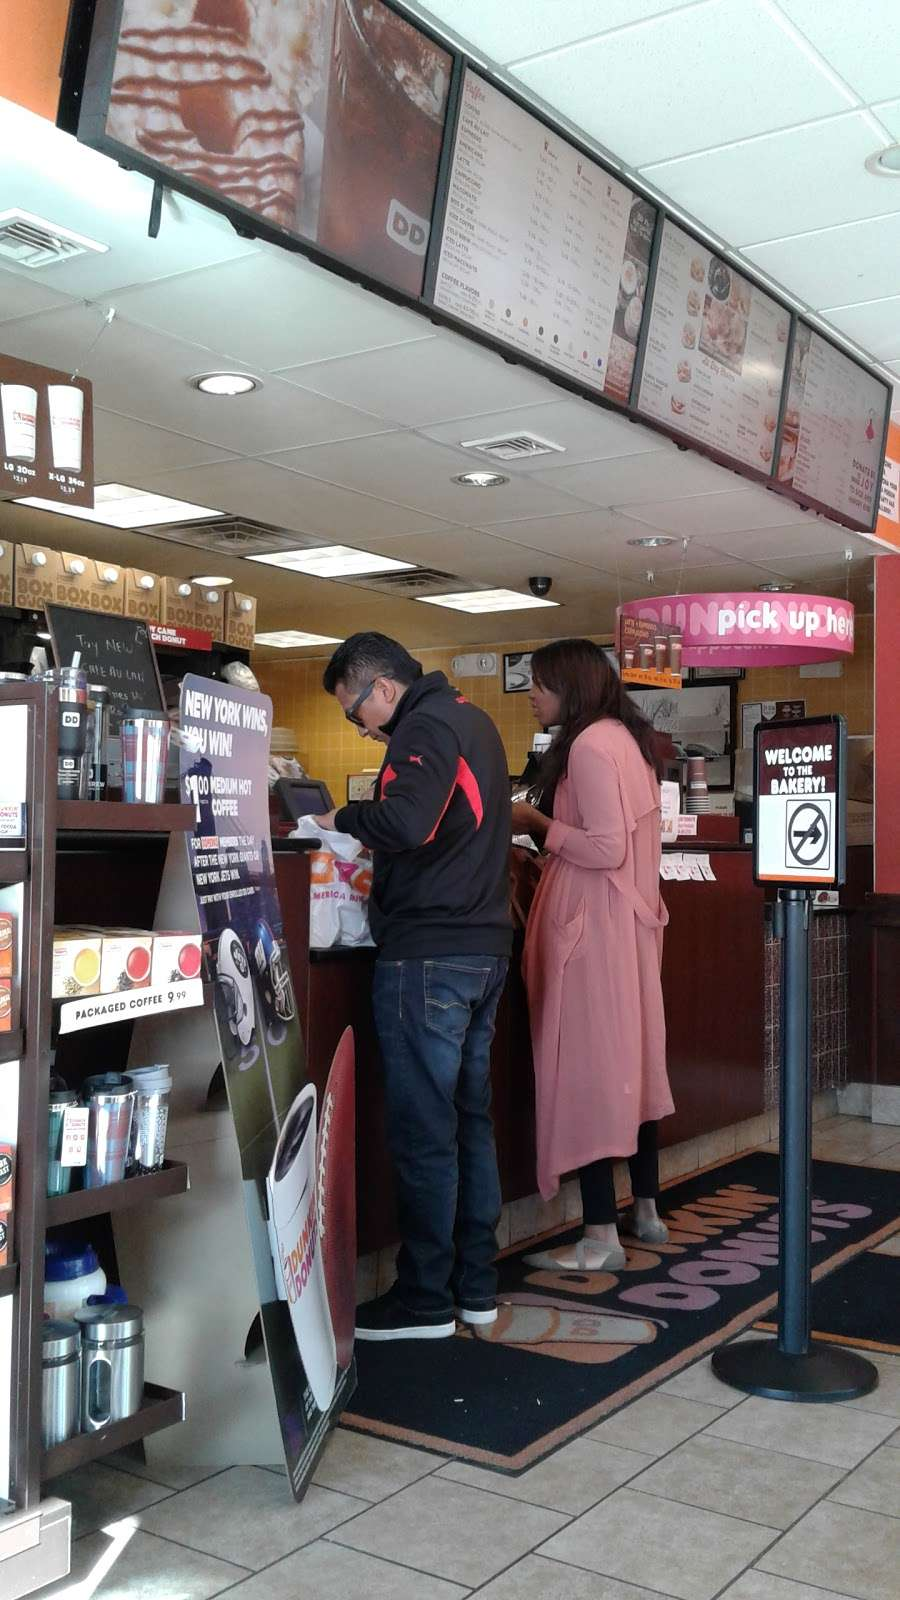 Dunkin Donuts - cafe  | Photo 2 of 10 | Address: 2109 John Fitzgerald Kennedy Blvd, North Bergen, NJ 07047, USA | Phone: (201) 863-0500